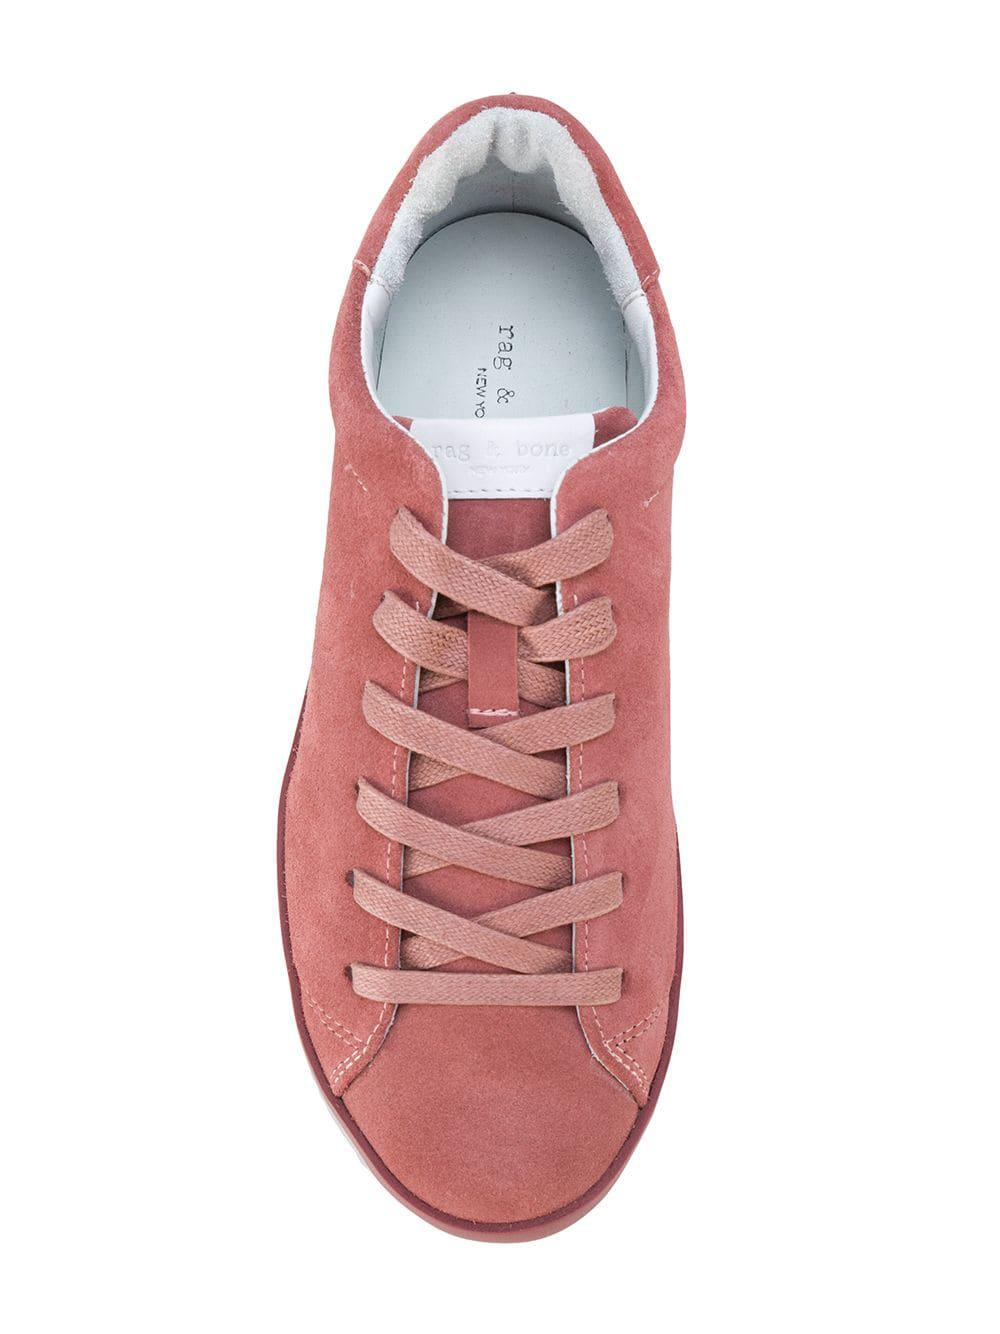 Rag & Bone Leather Casual Lace-up Sneakers in Pink